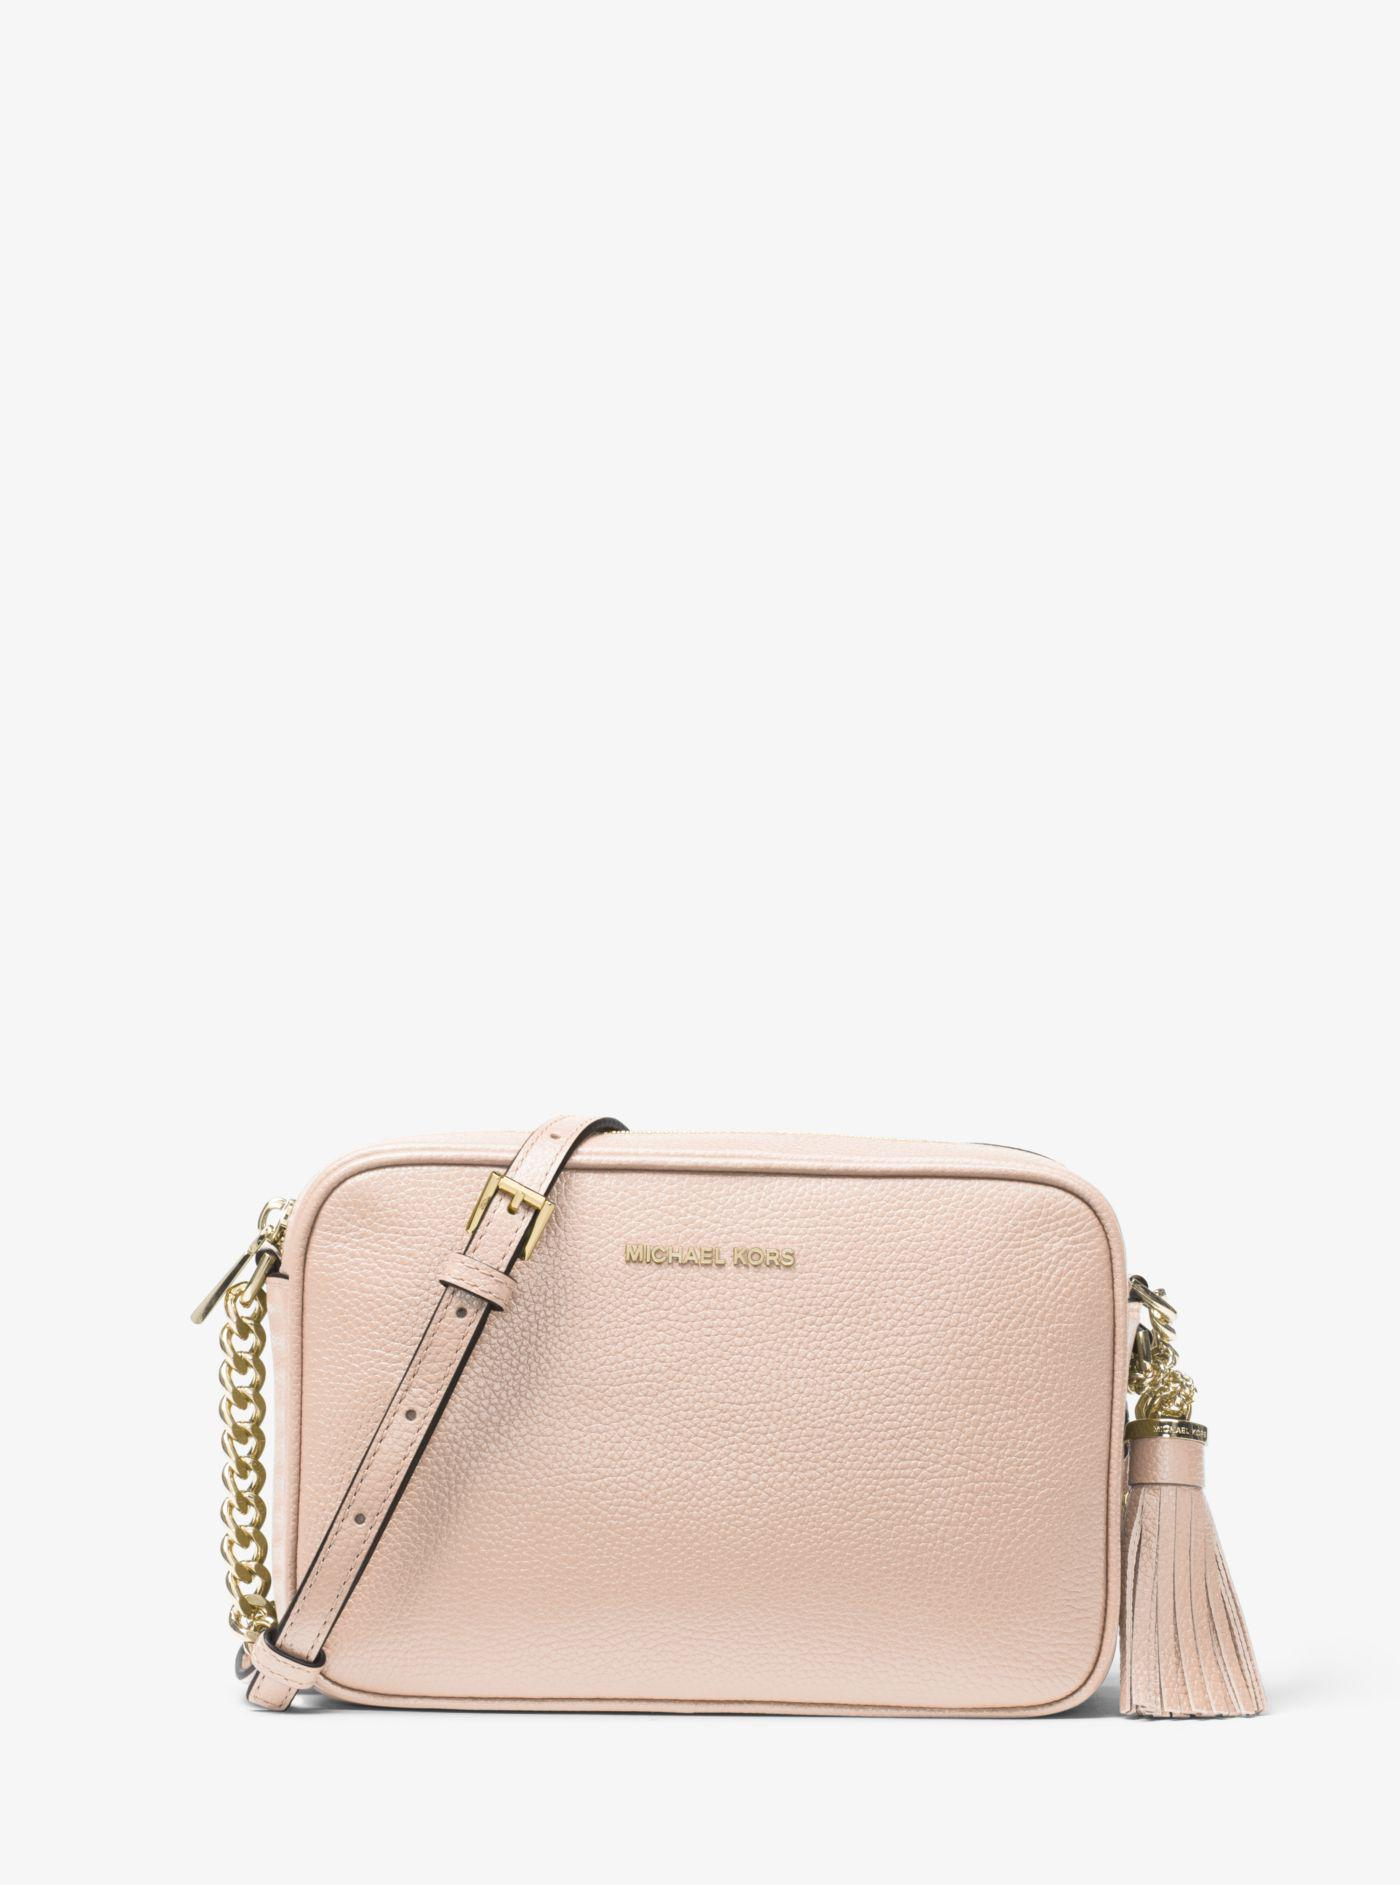 fb23c9699d Lyst - Michael Kors Ginny Leather Crossbody in Pink